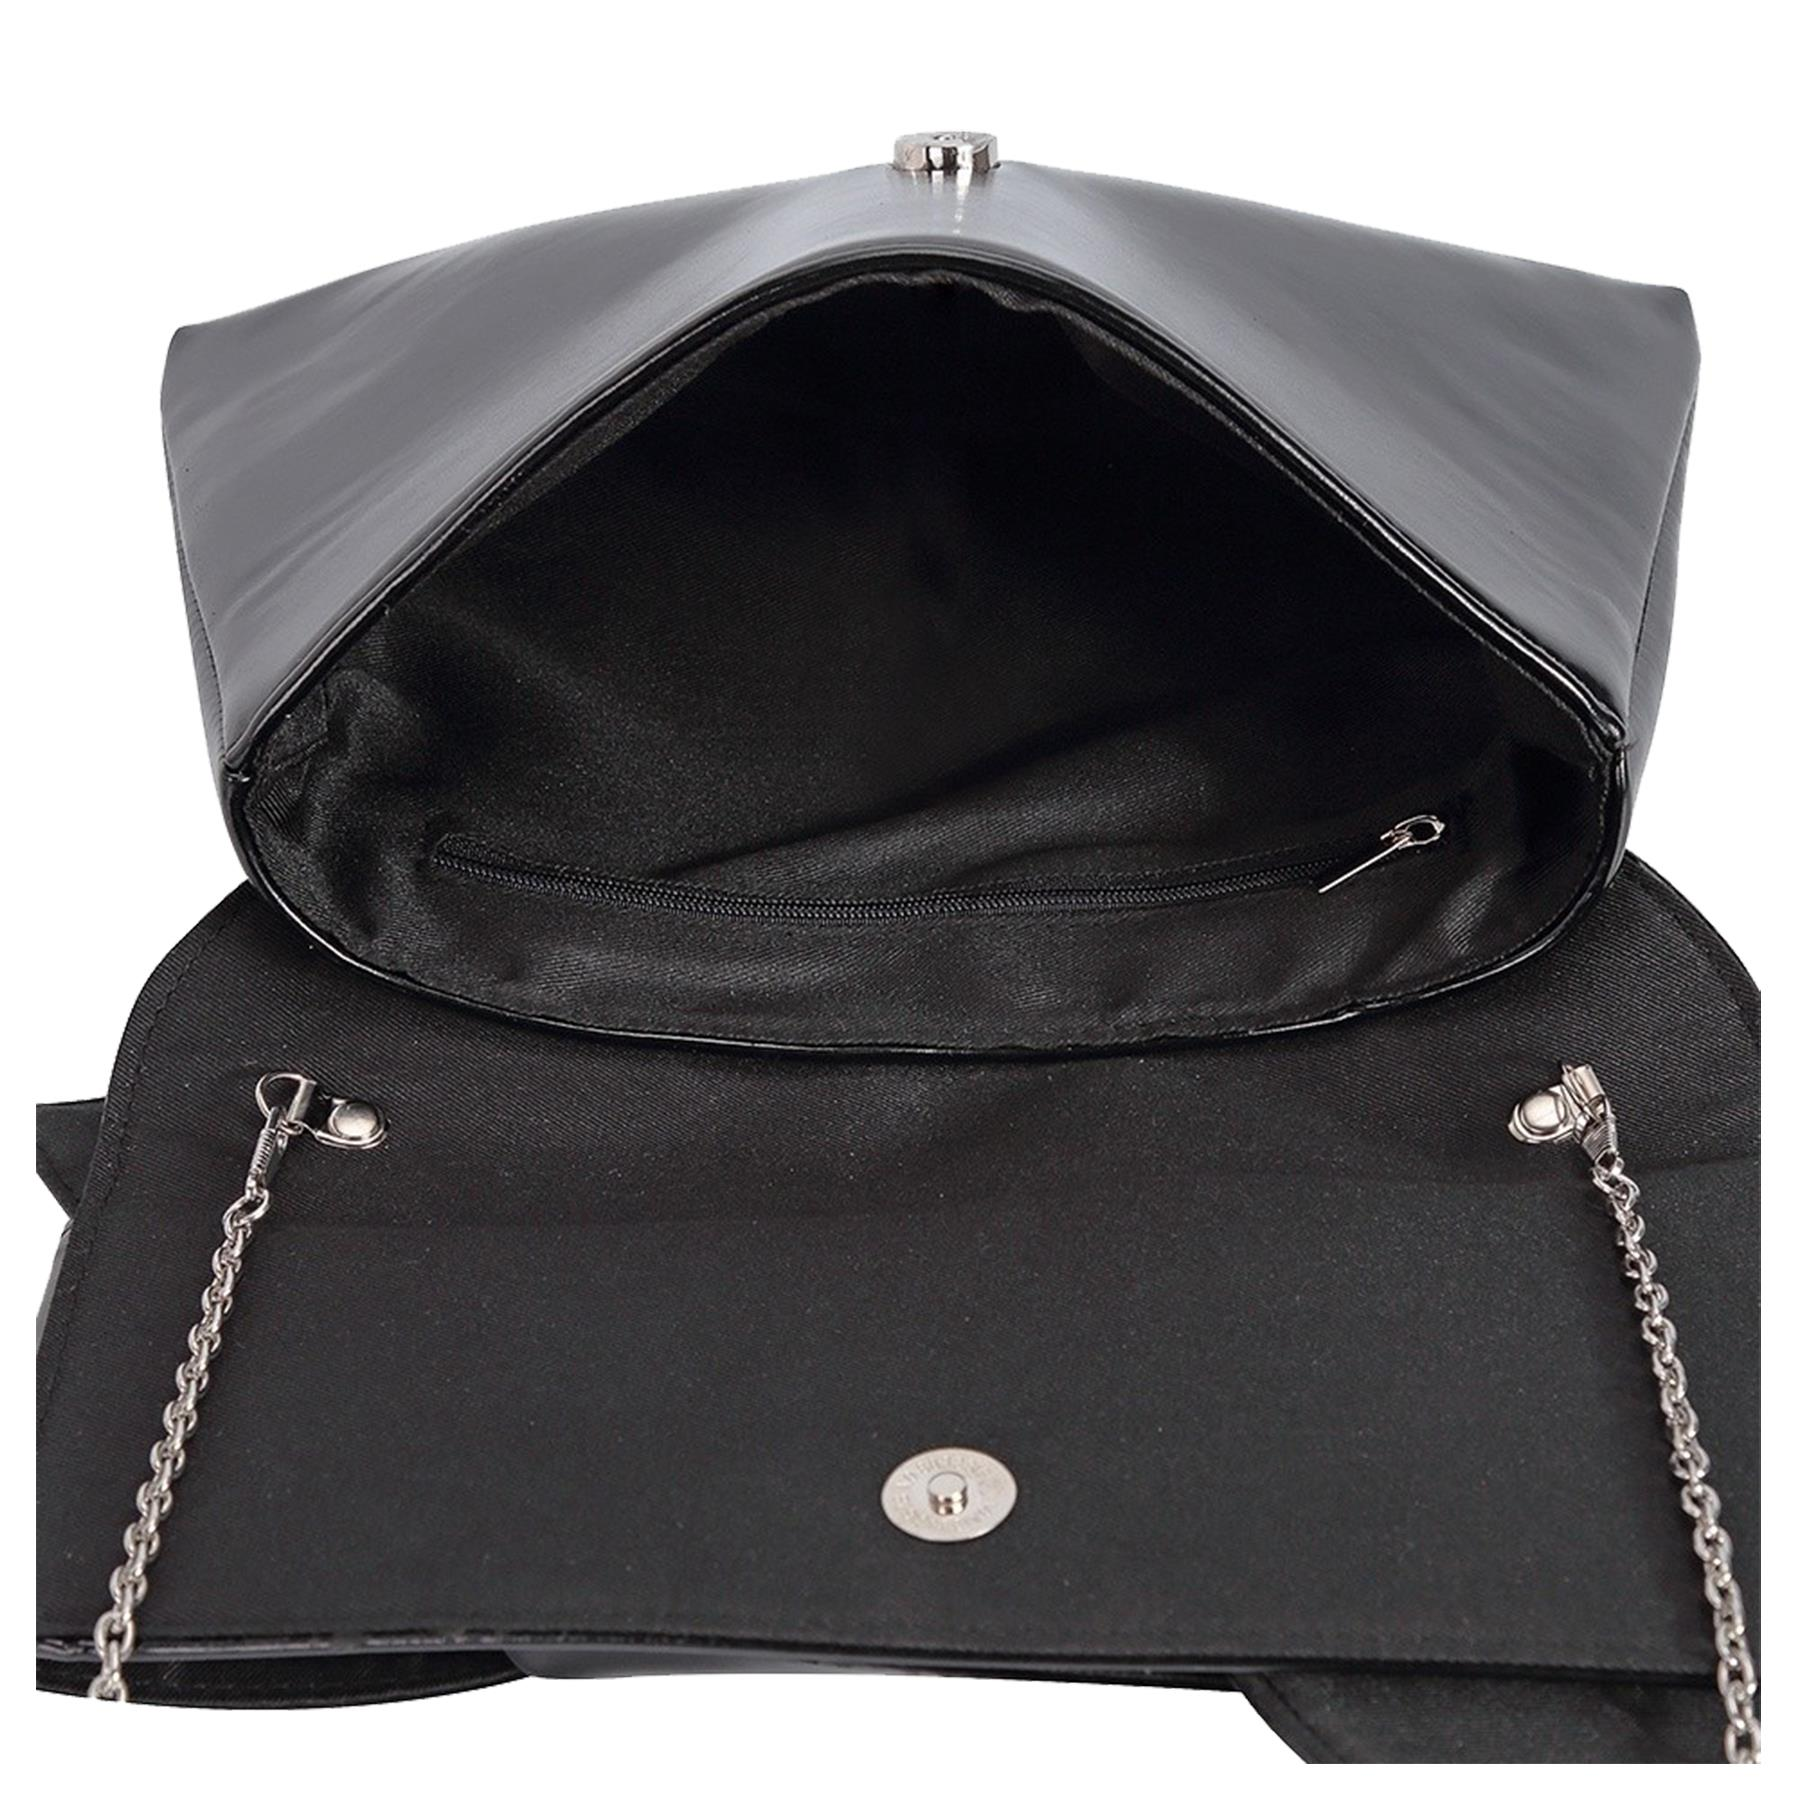 New-Knot-Detail-Shiny-Synthetic-Leather-Ladies-Party-Clutch-Bag-Purse thumbnail 4